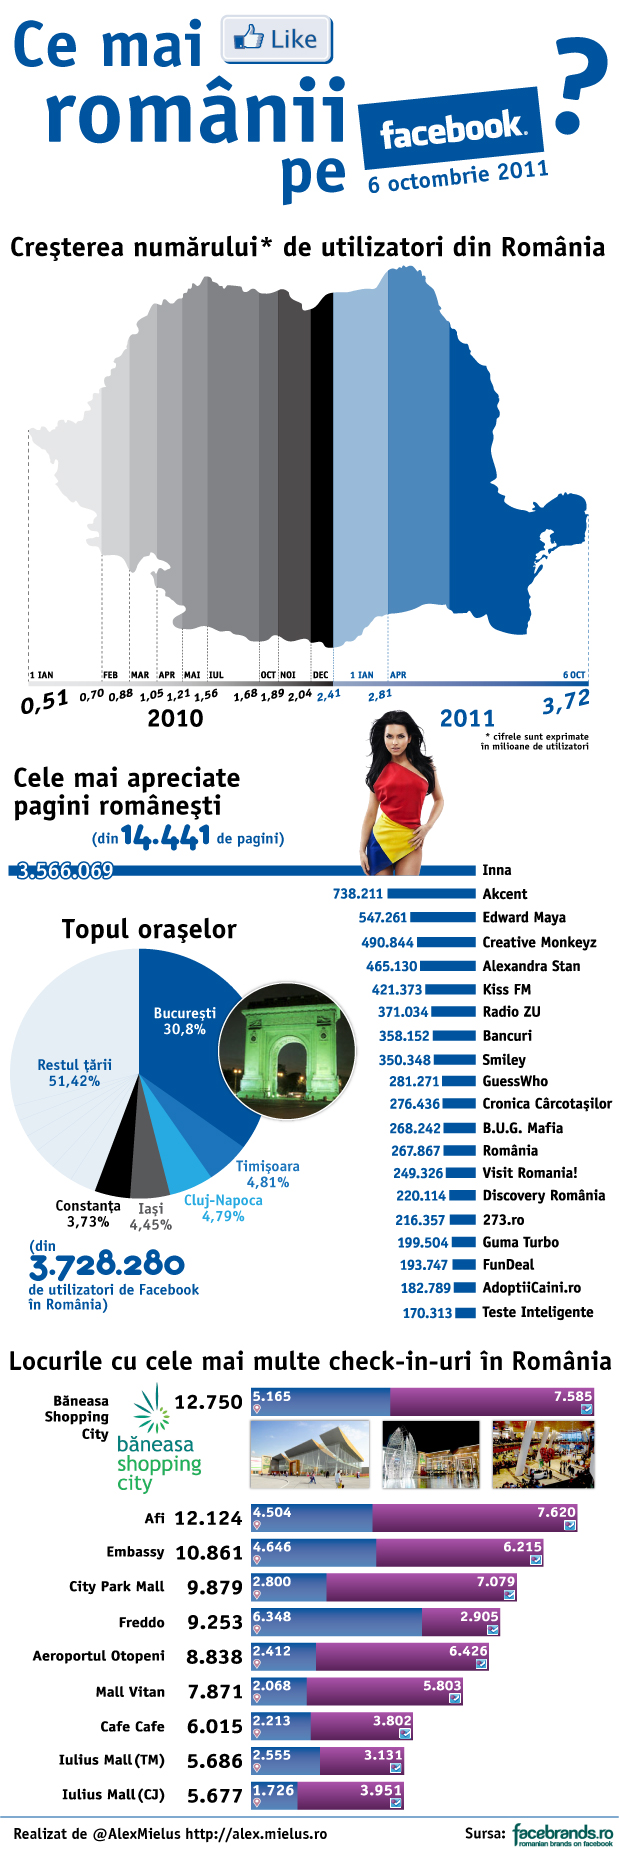 Facebook in Romania - 6 octombrie 2011